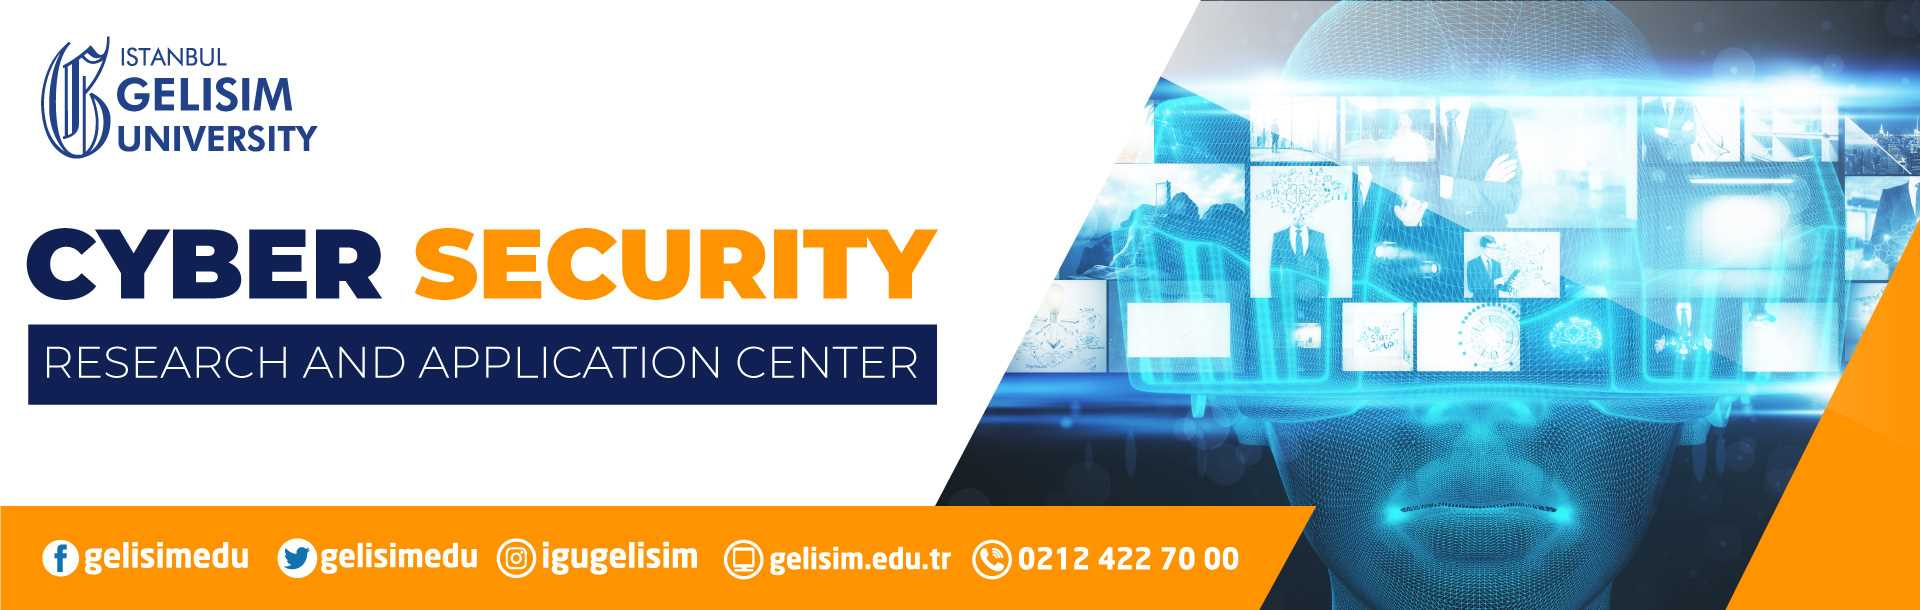 Cyber Security Research and Application Center